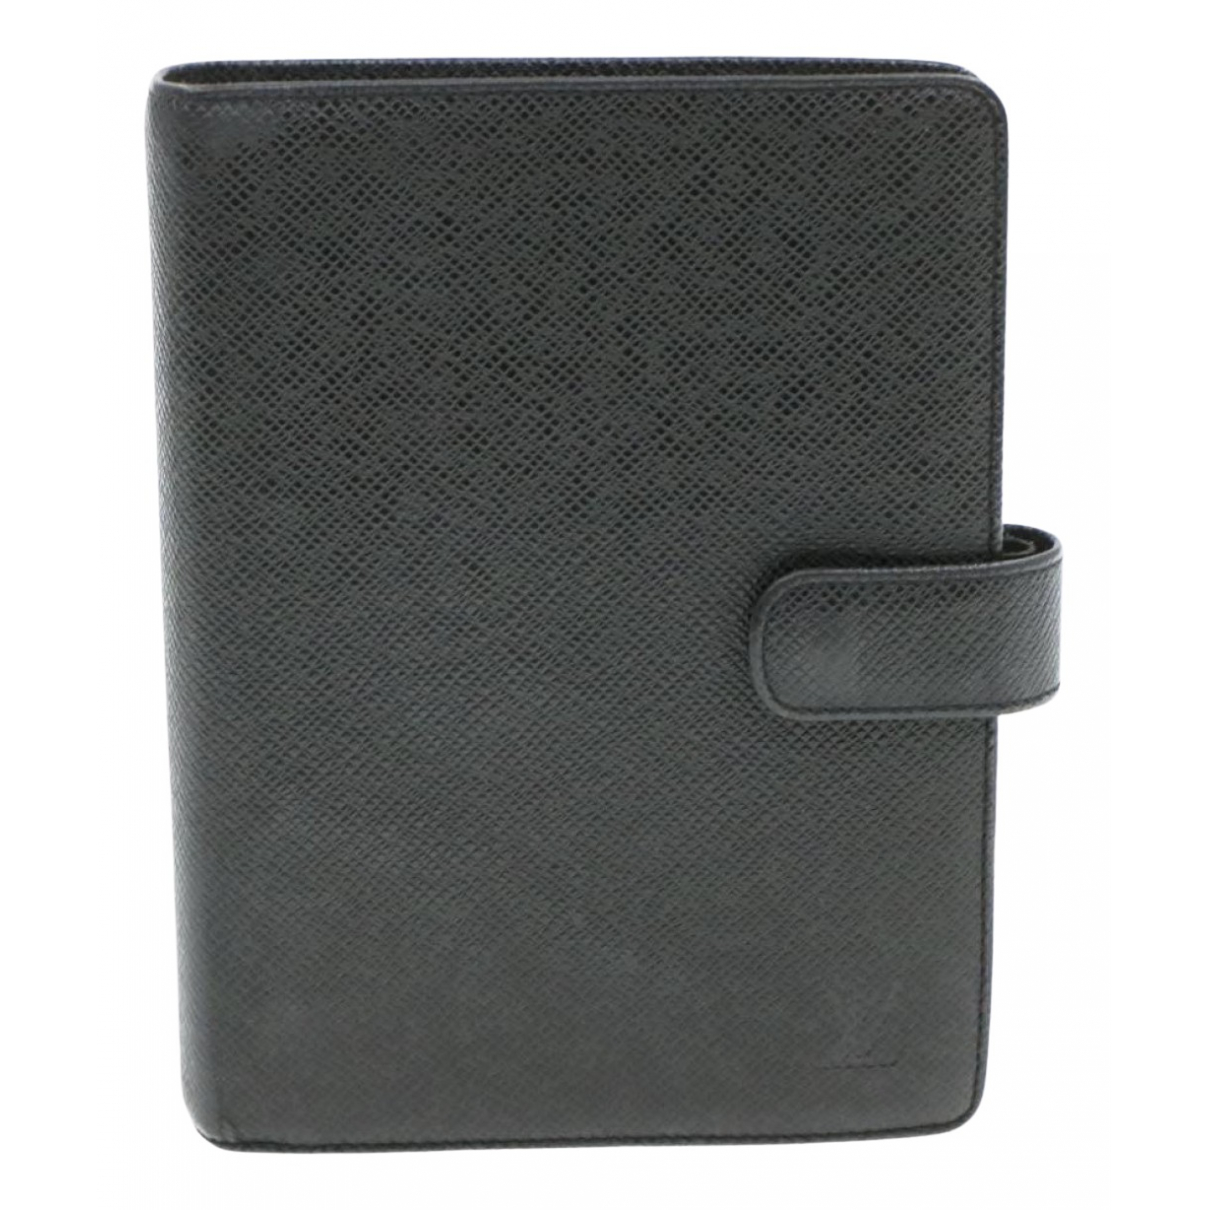 Louis Vuitton N Black Leather Home decor for Life & Living N